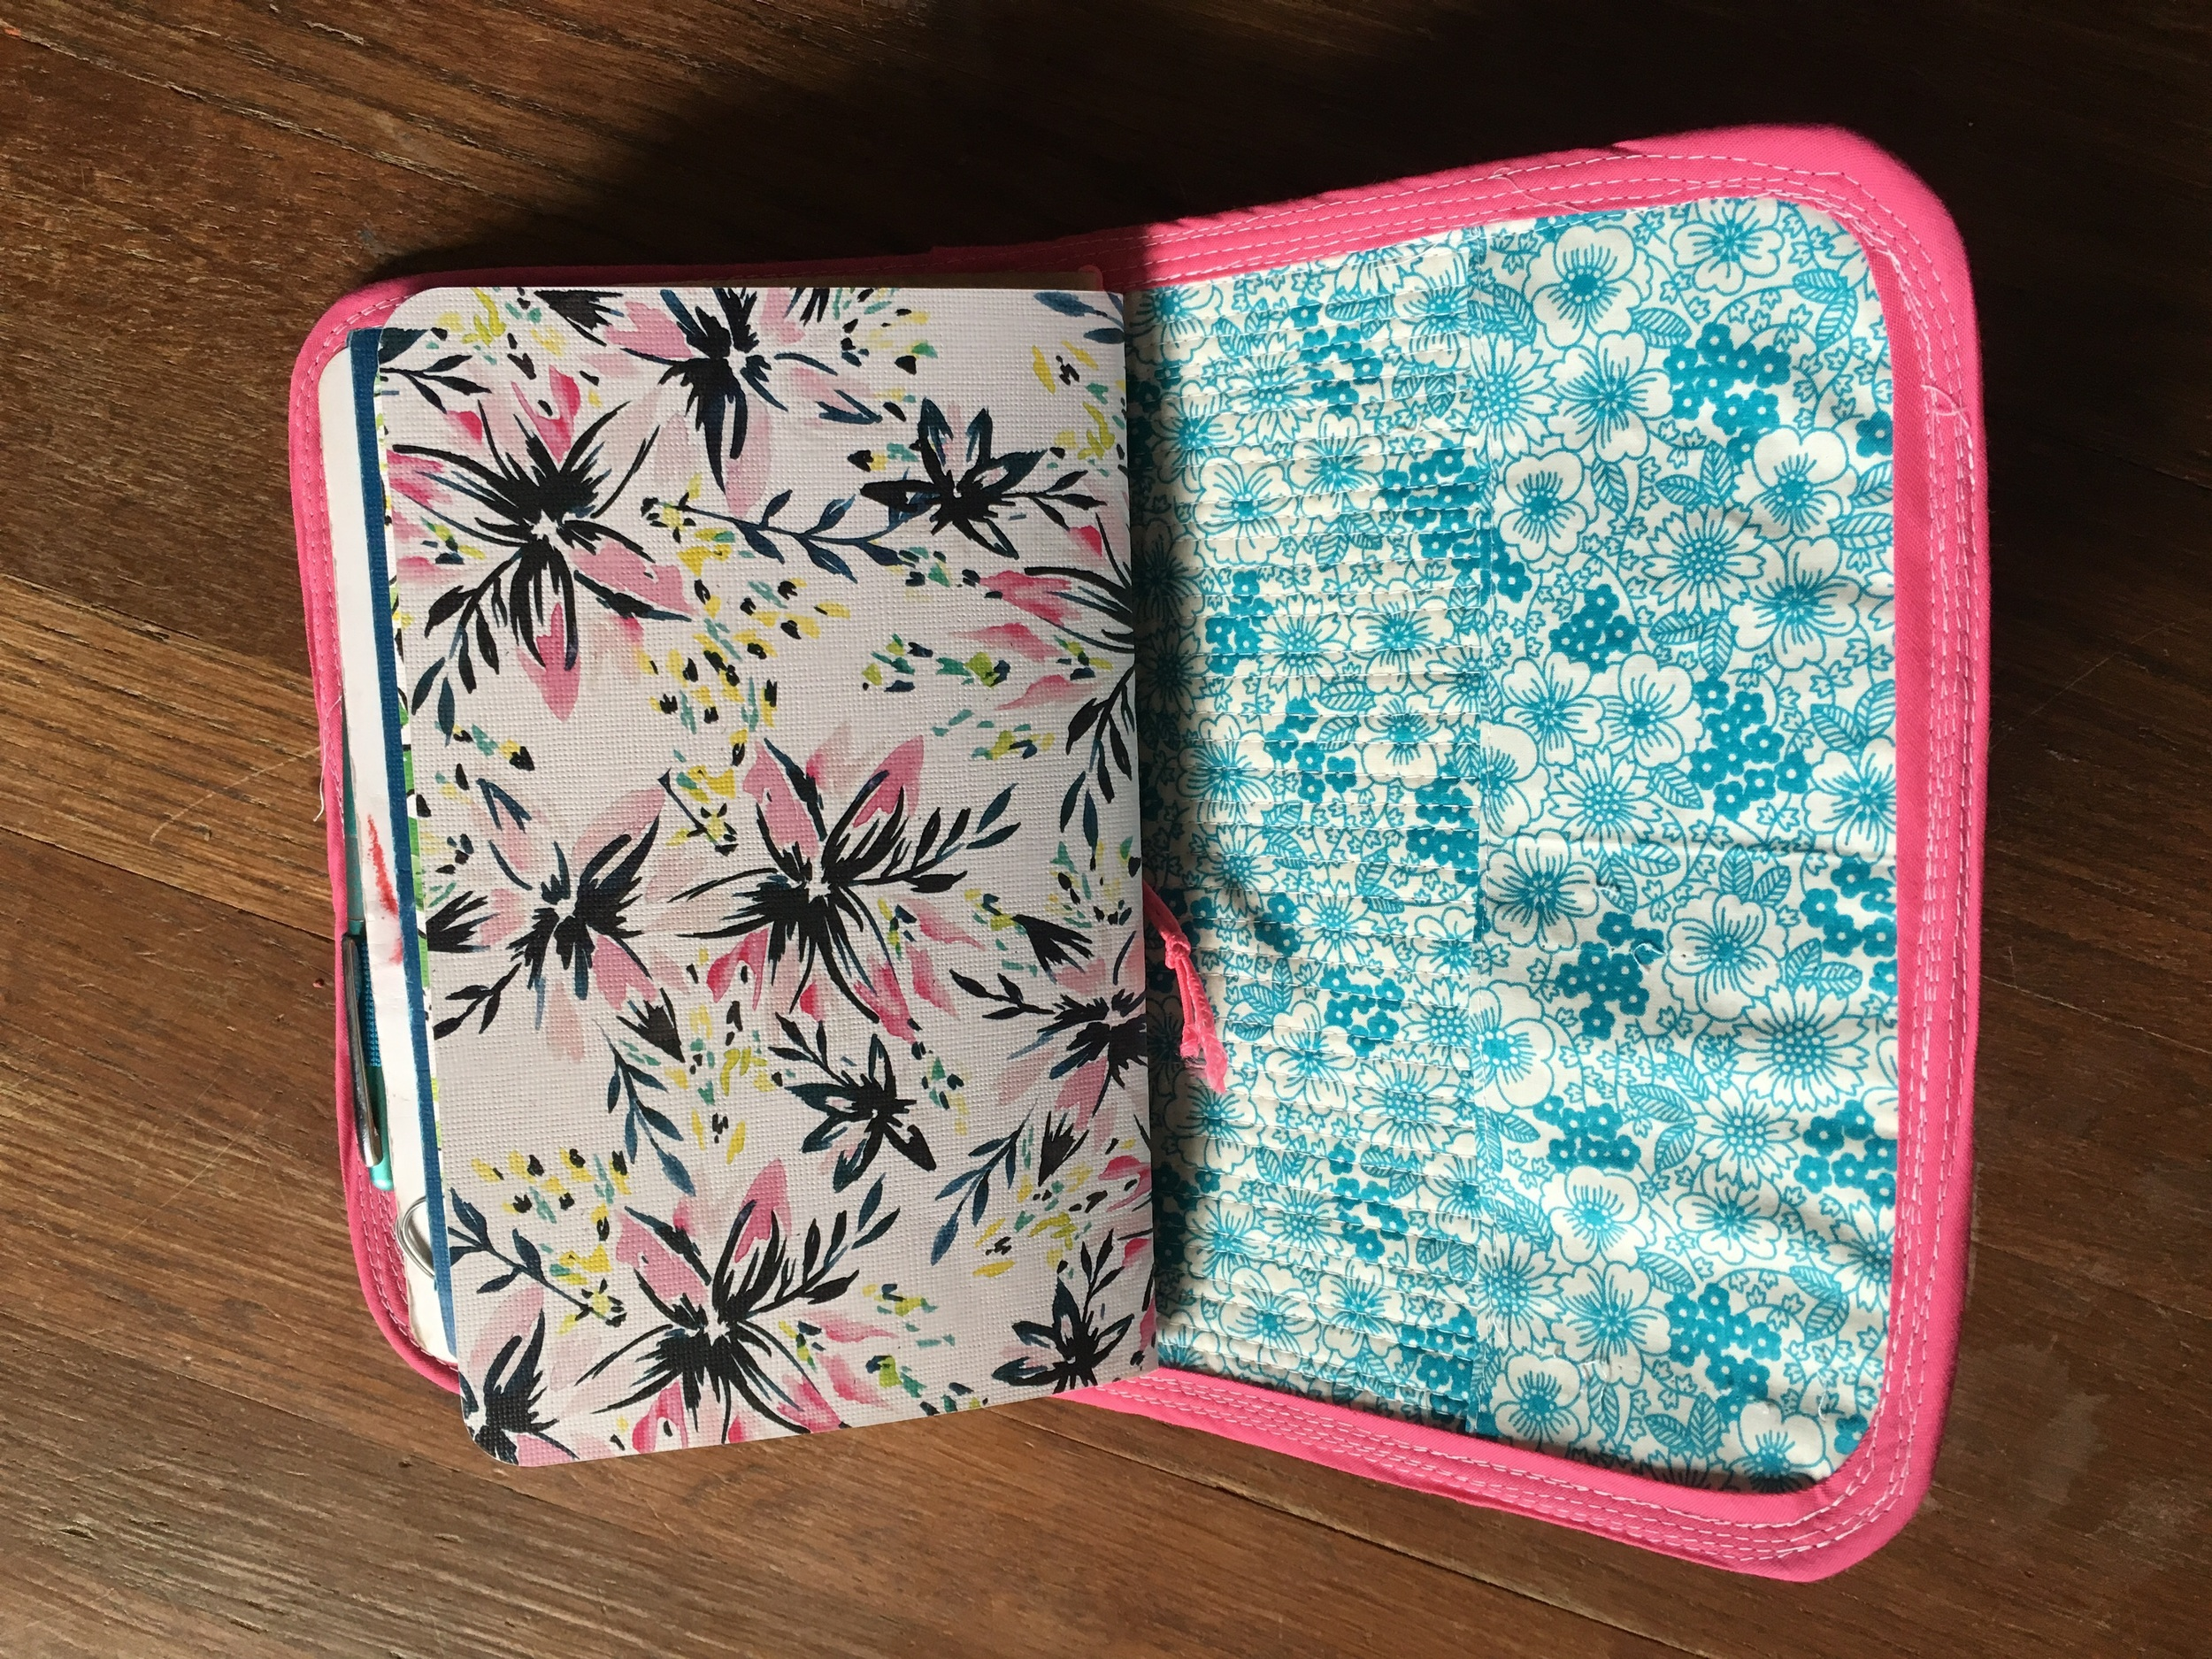 Upside down, but large flap pockets, and pretty May Design books inside. :)